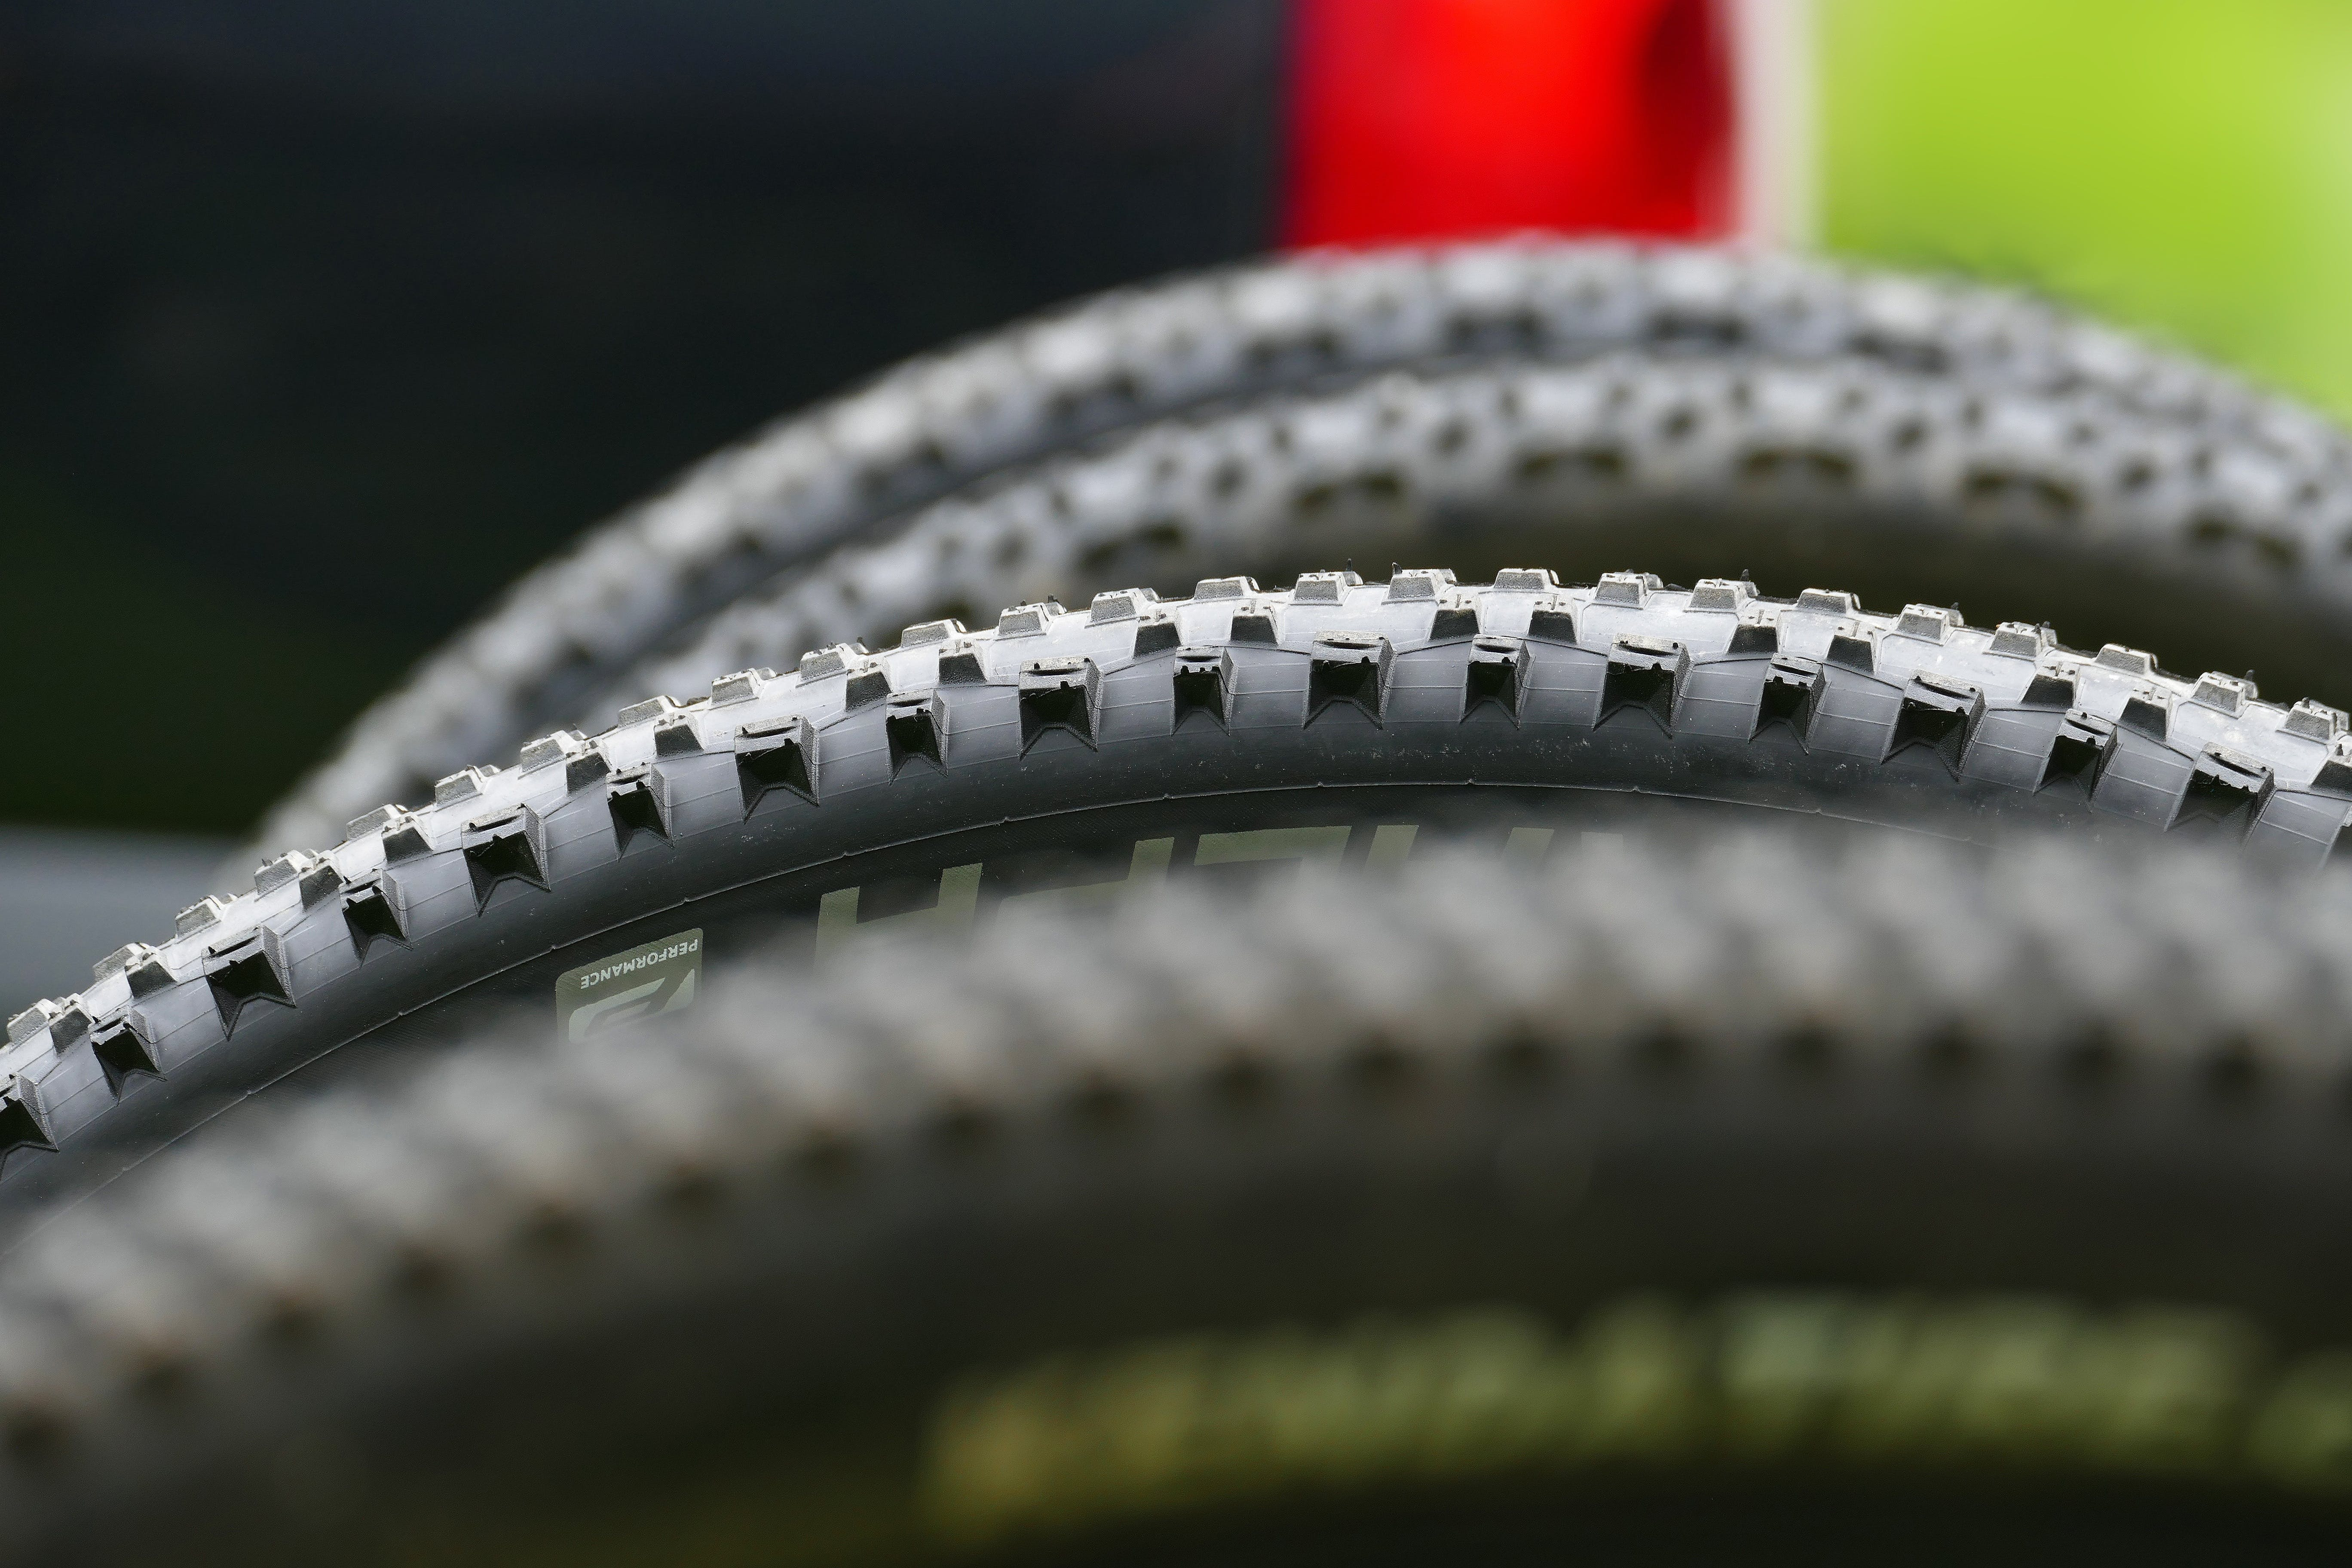 Bicycle Spiky Tire